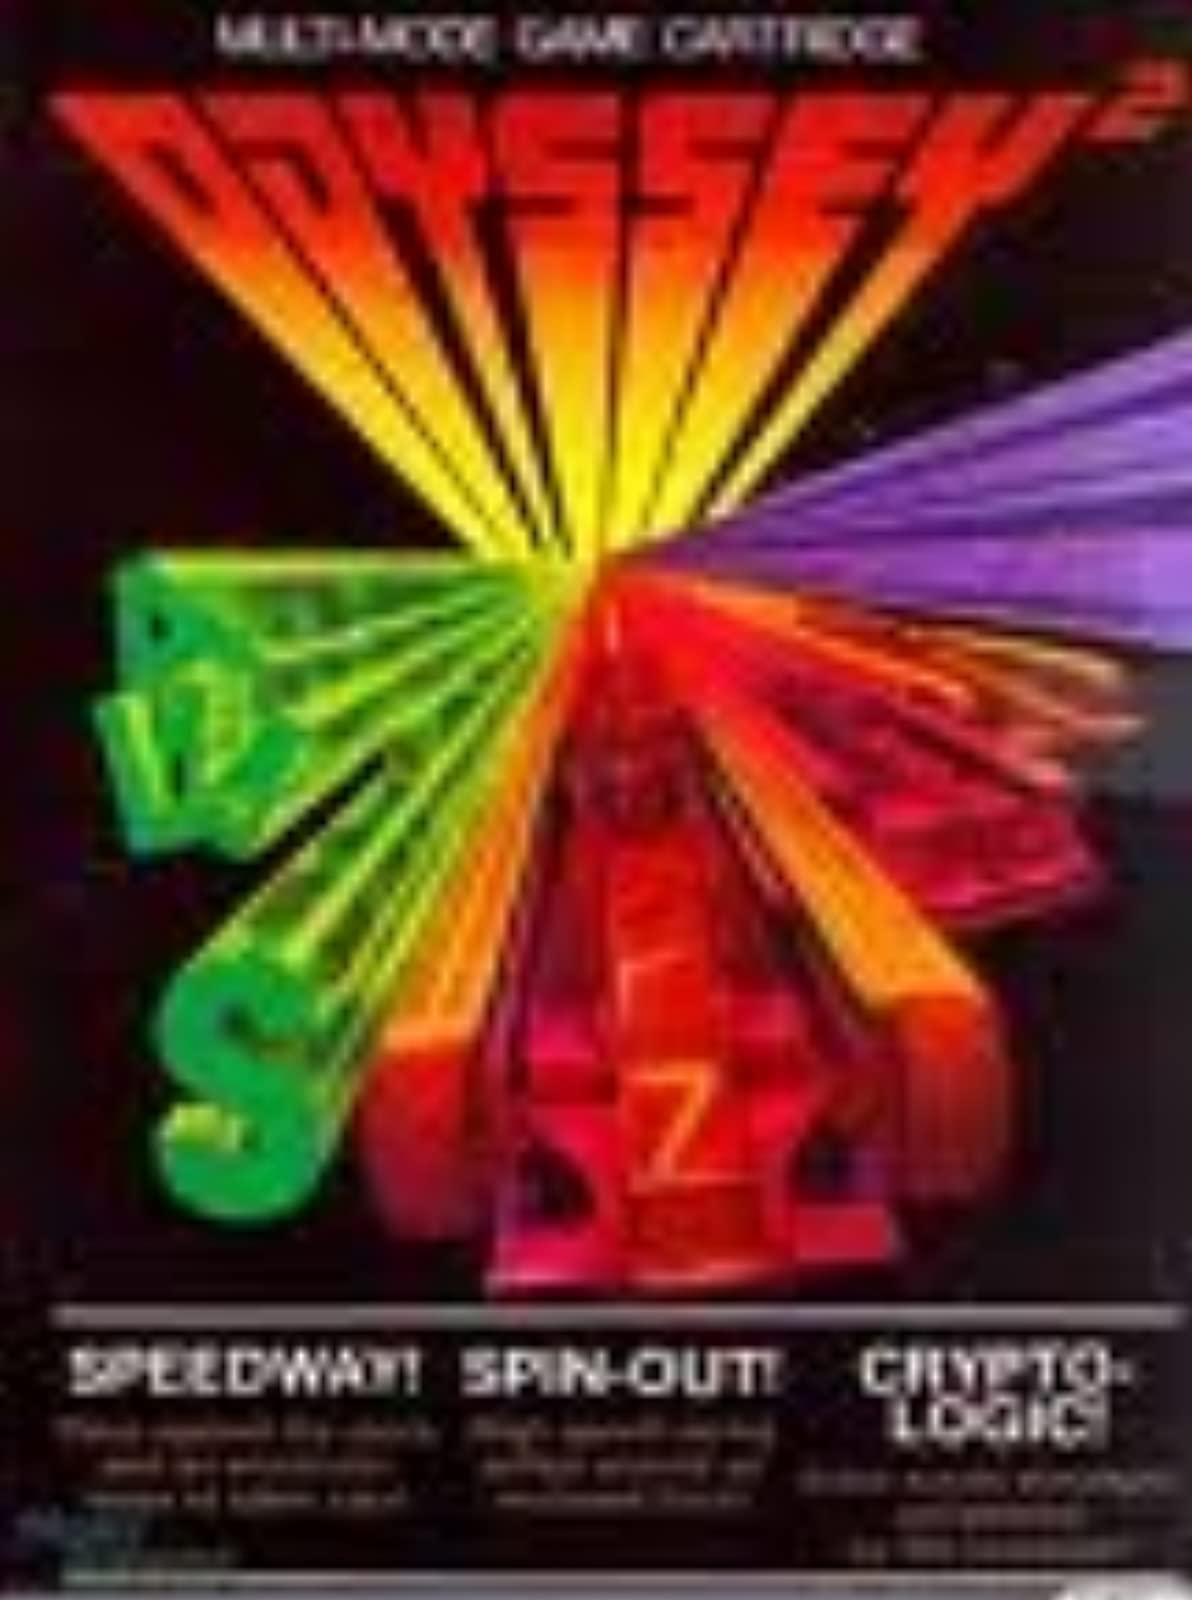 Speedway Spin-Out And Crypto-Logic Odyssey 2 For Odyssey 2